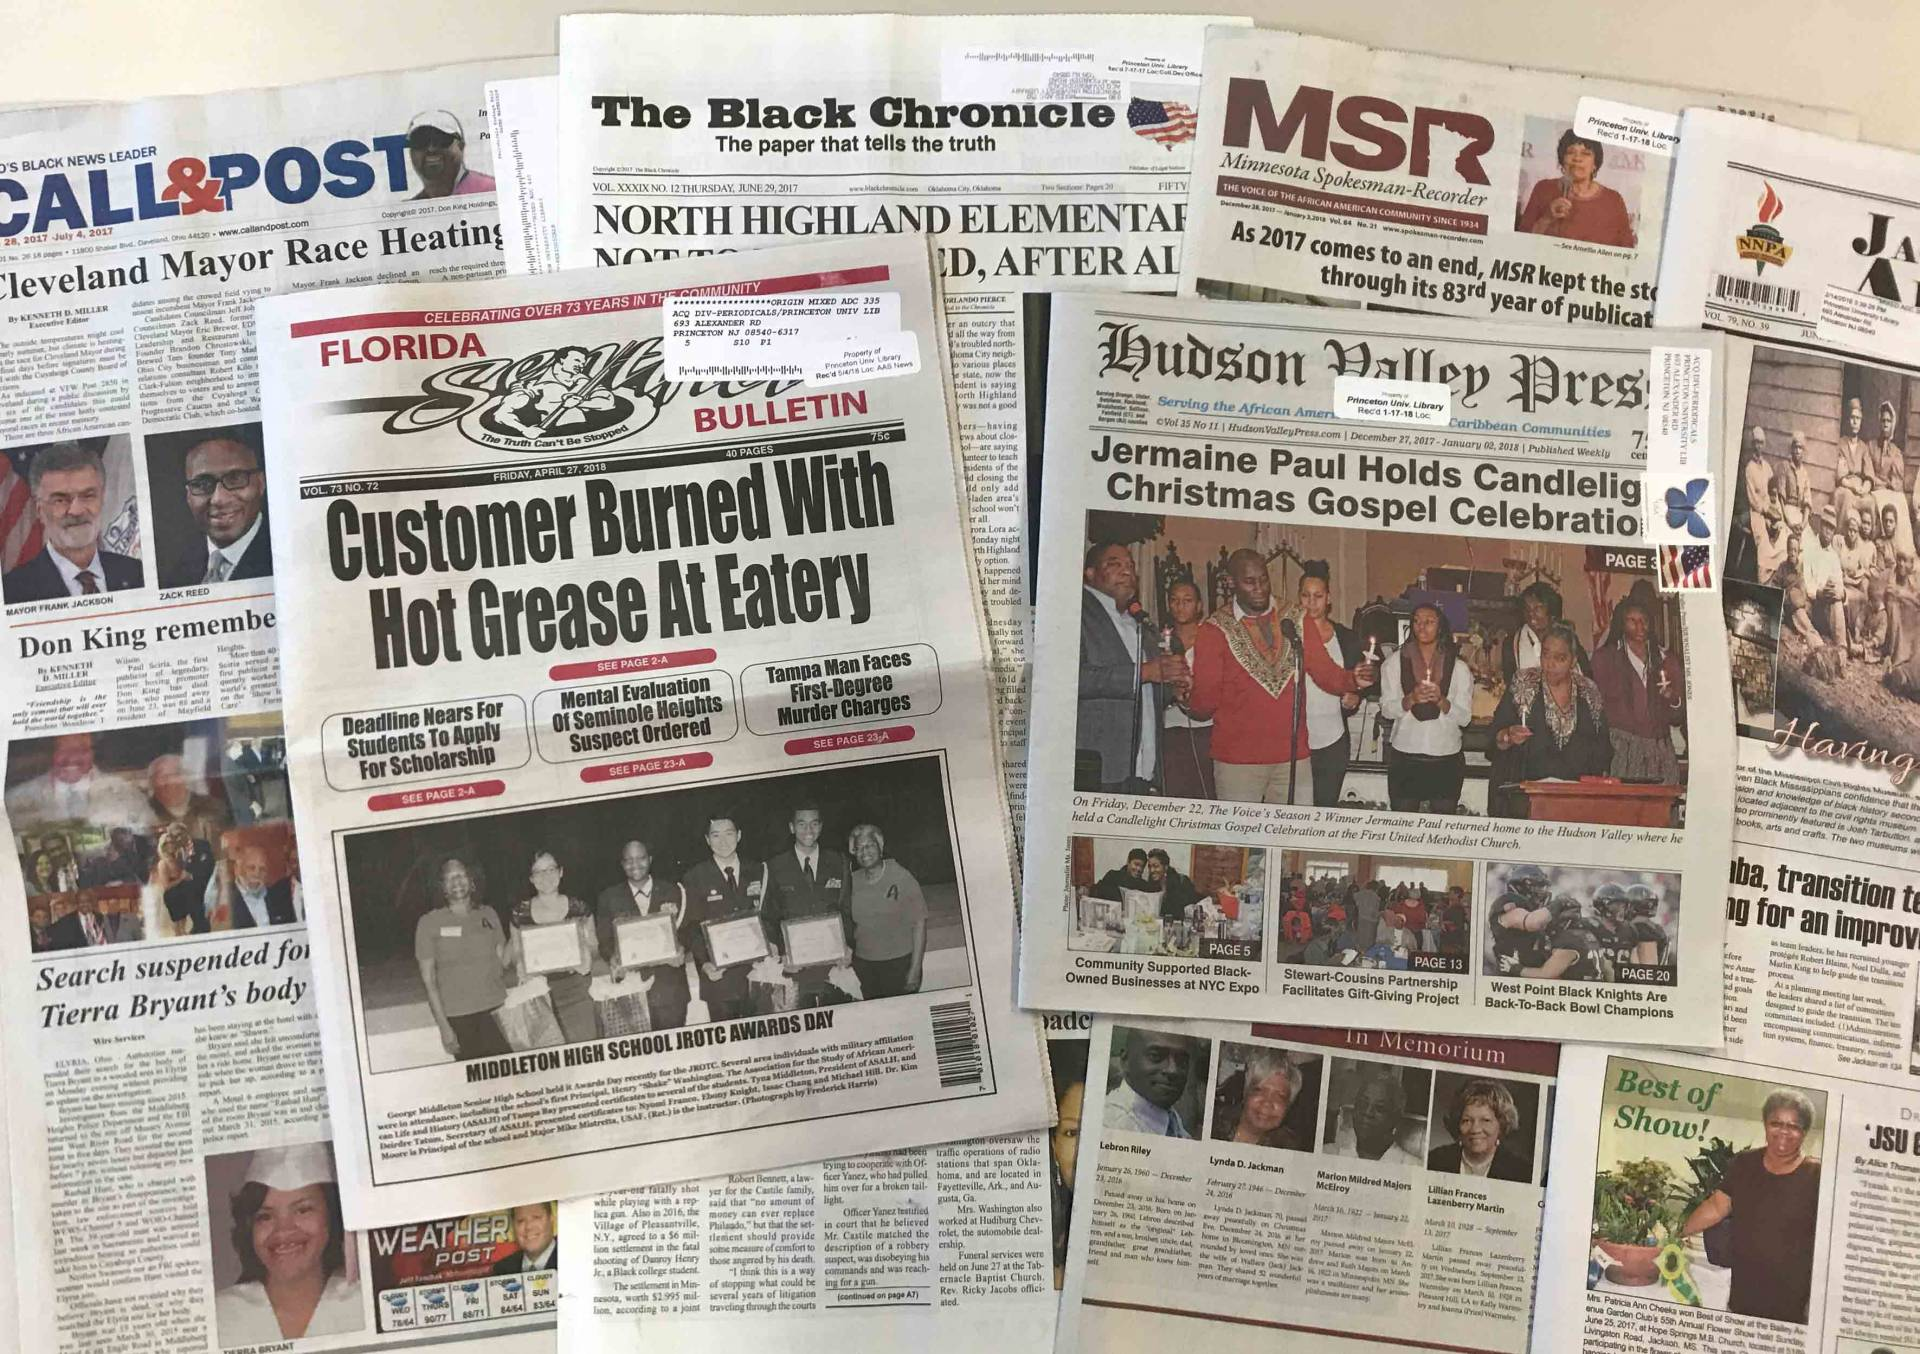 Samples of newspapers published for African American audiences